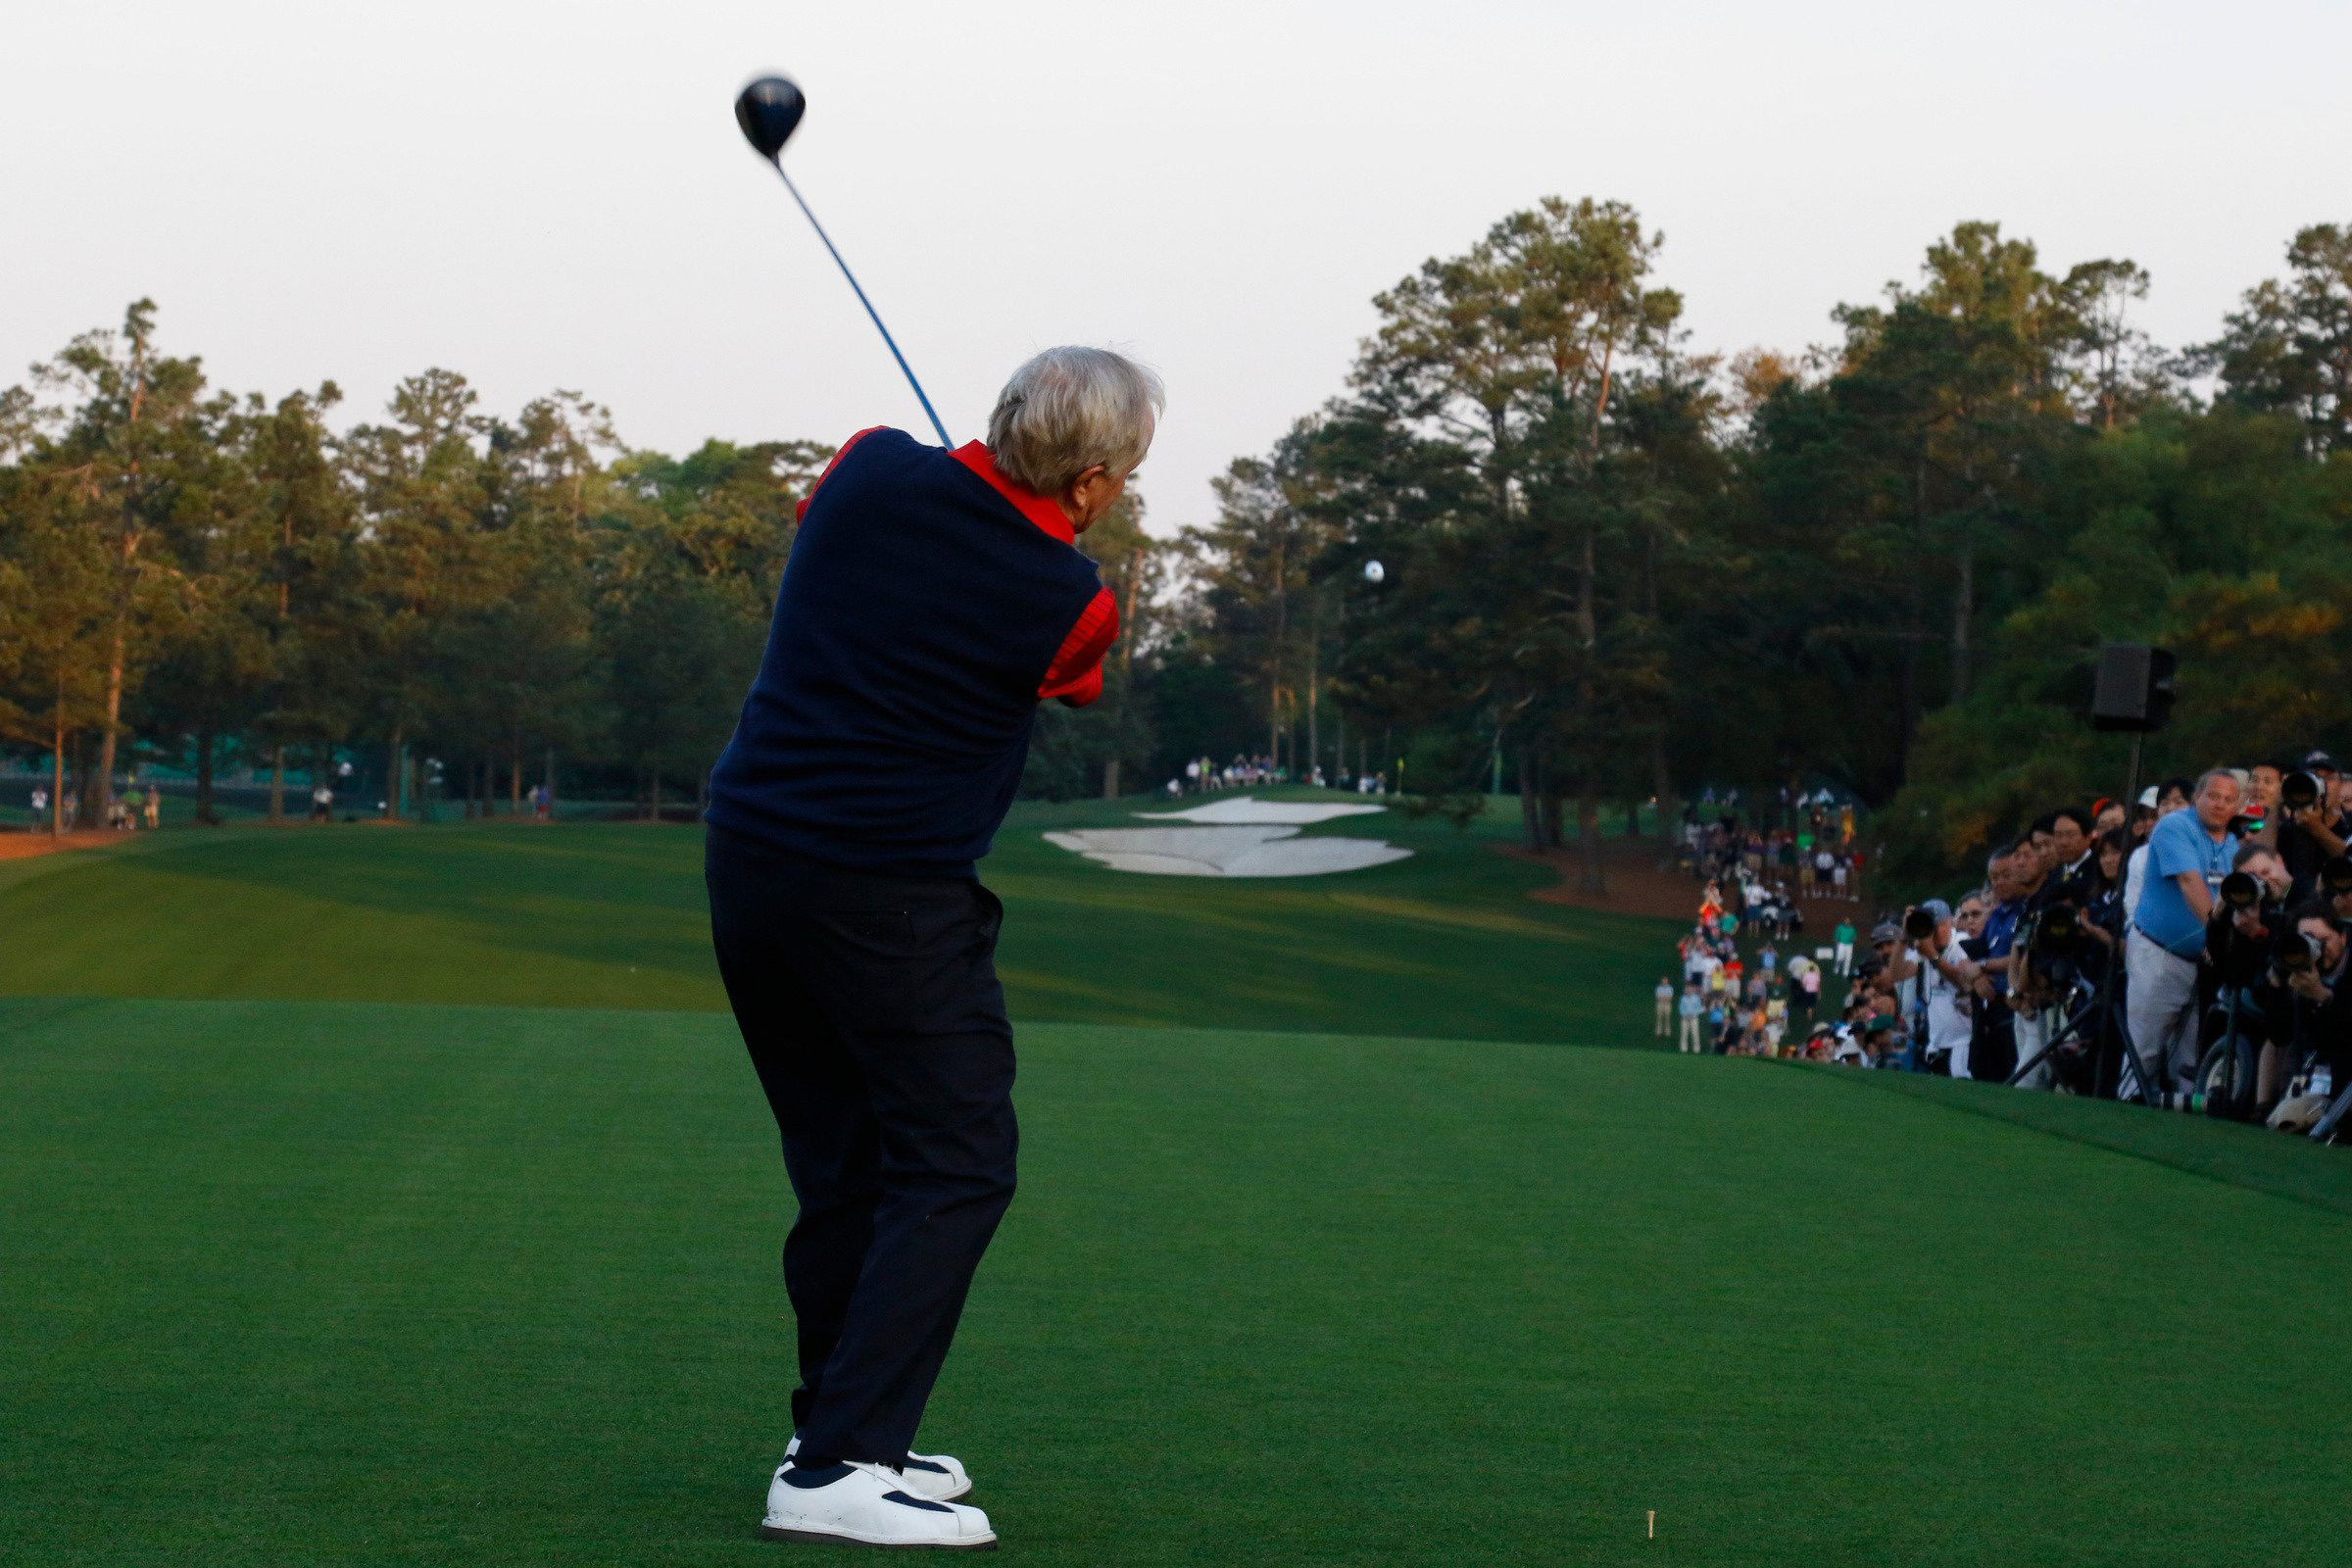 Jack Nicklaus hit a high fade off the tee on No. 1. Yes, he's still got it.